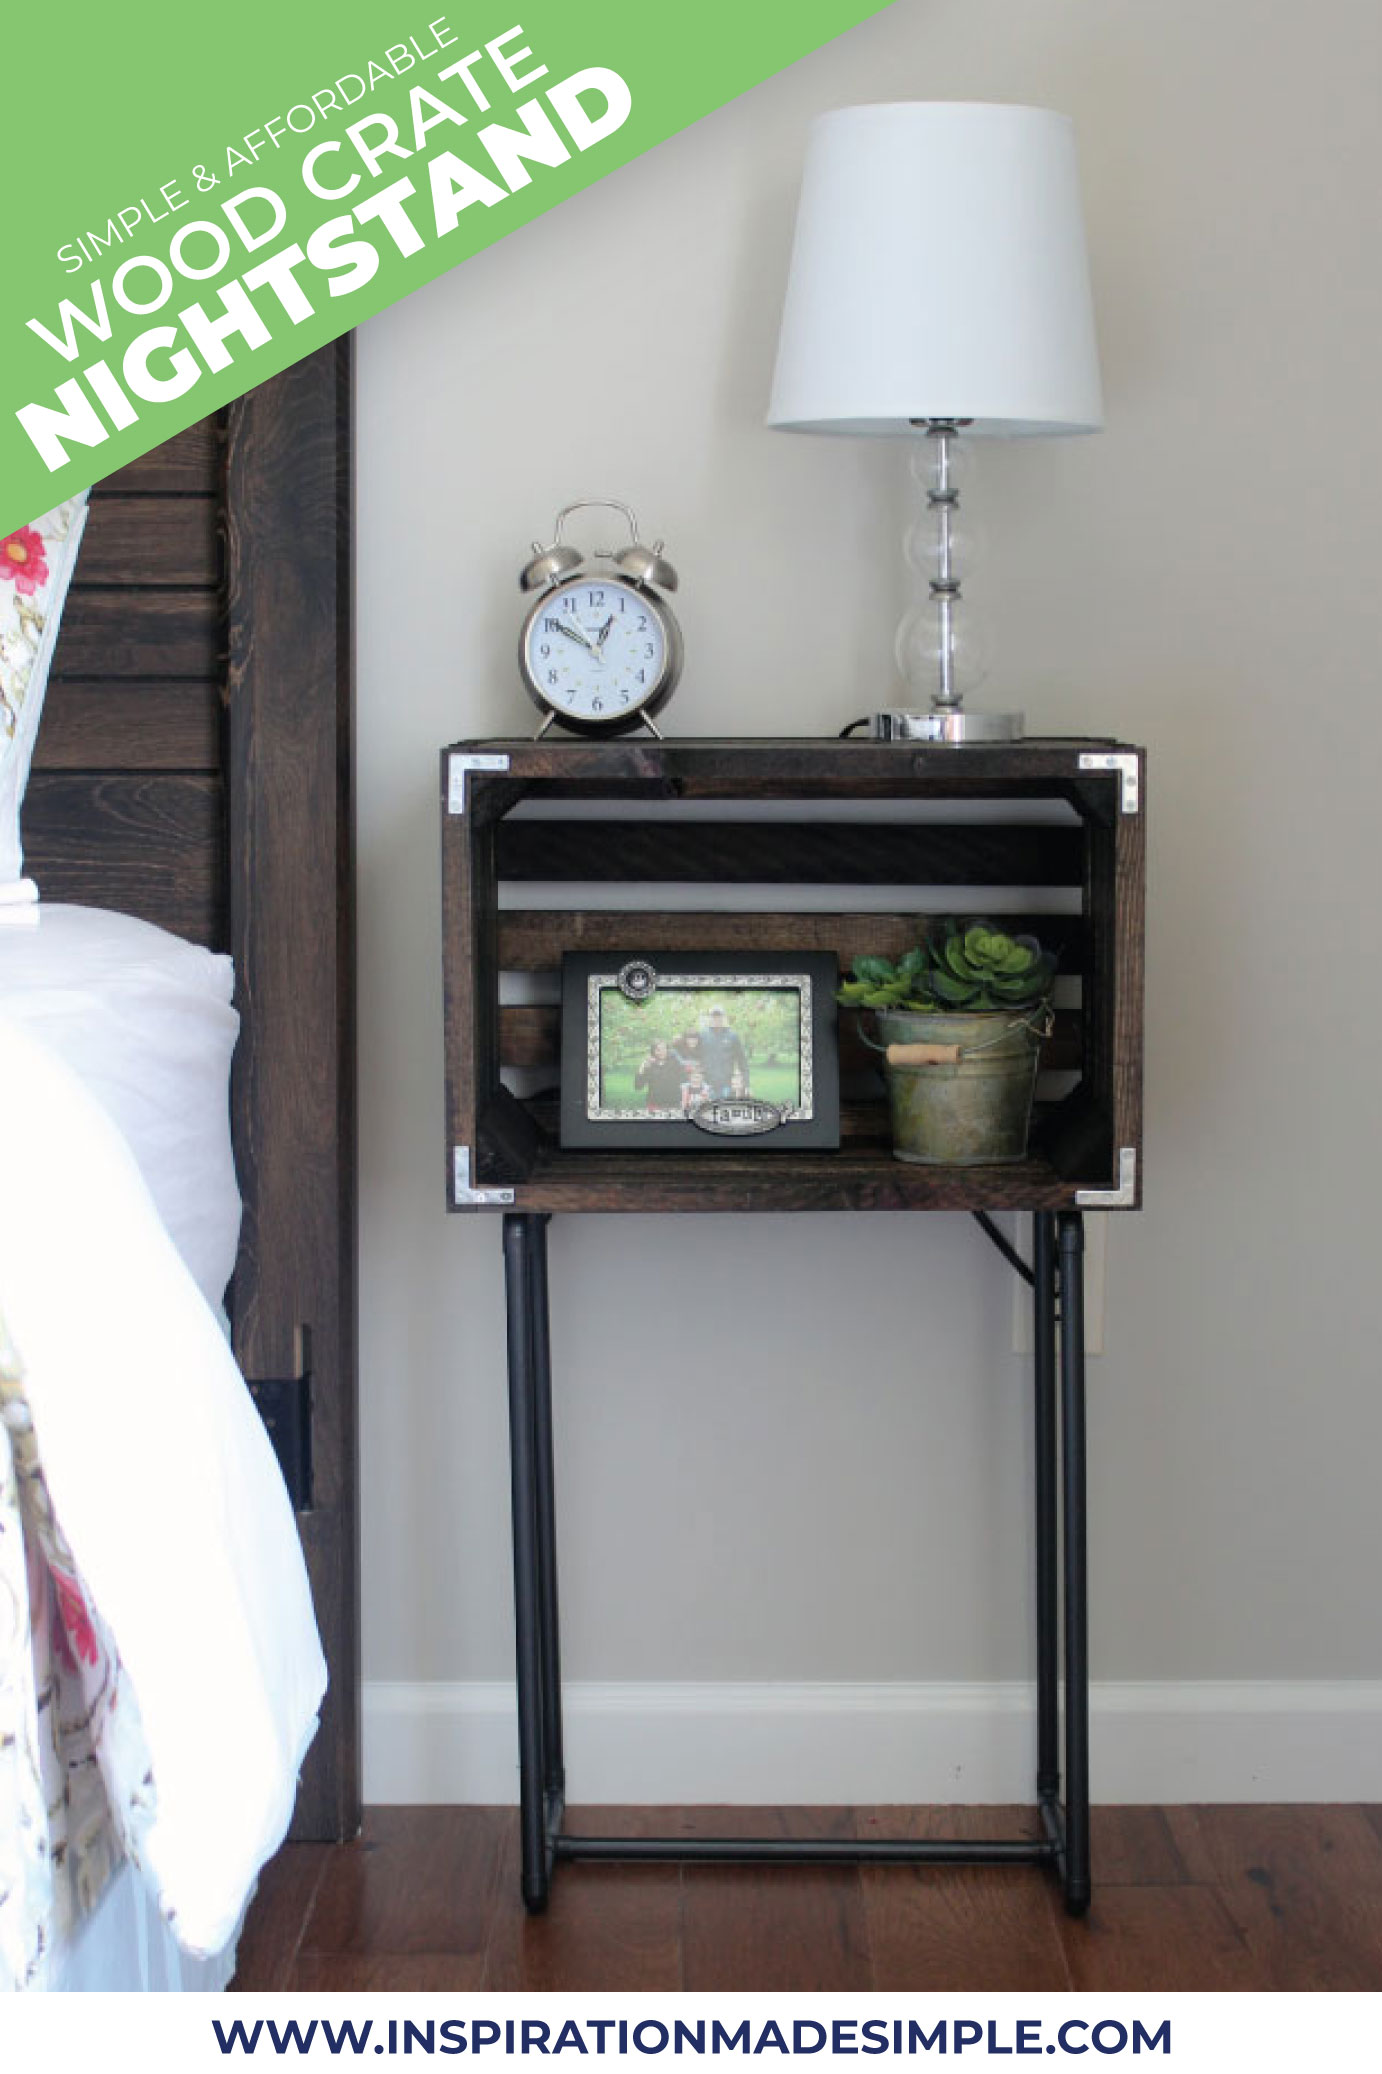 Diy Crate Nightstands Inspiration Made Simple